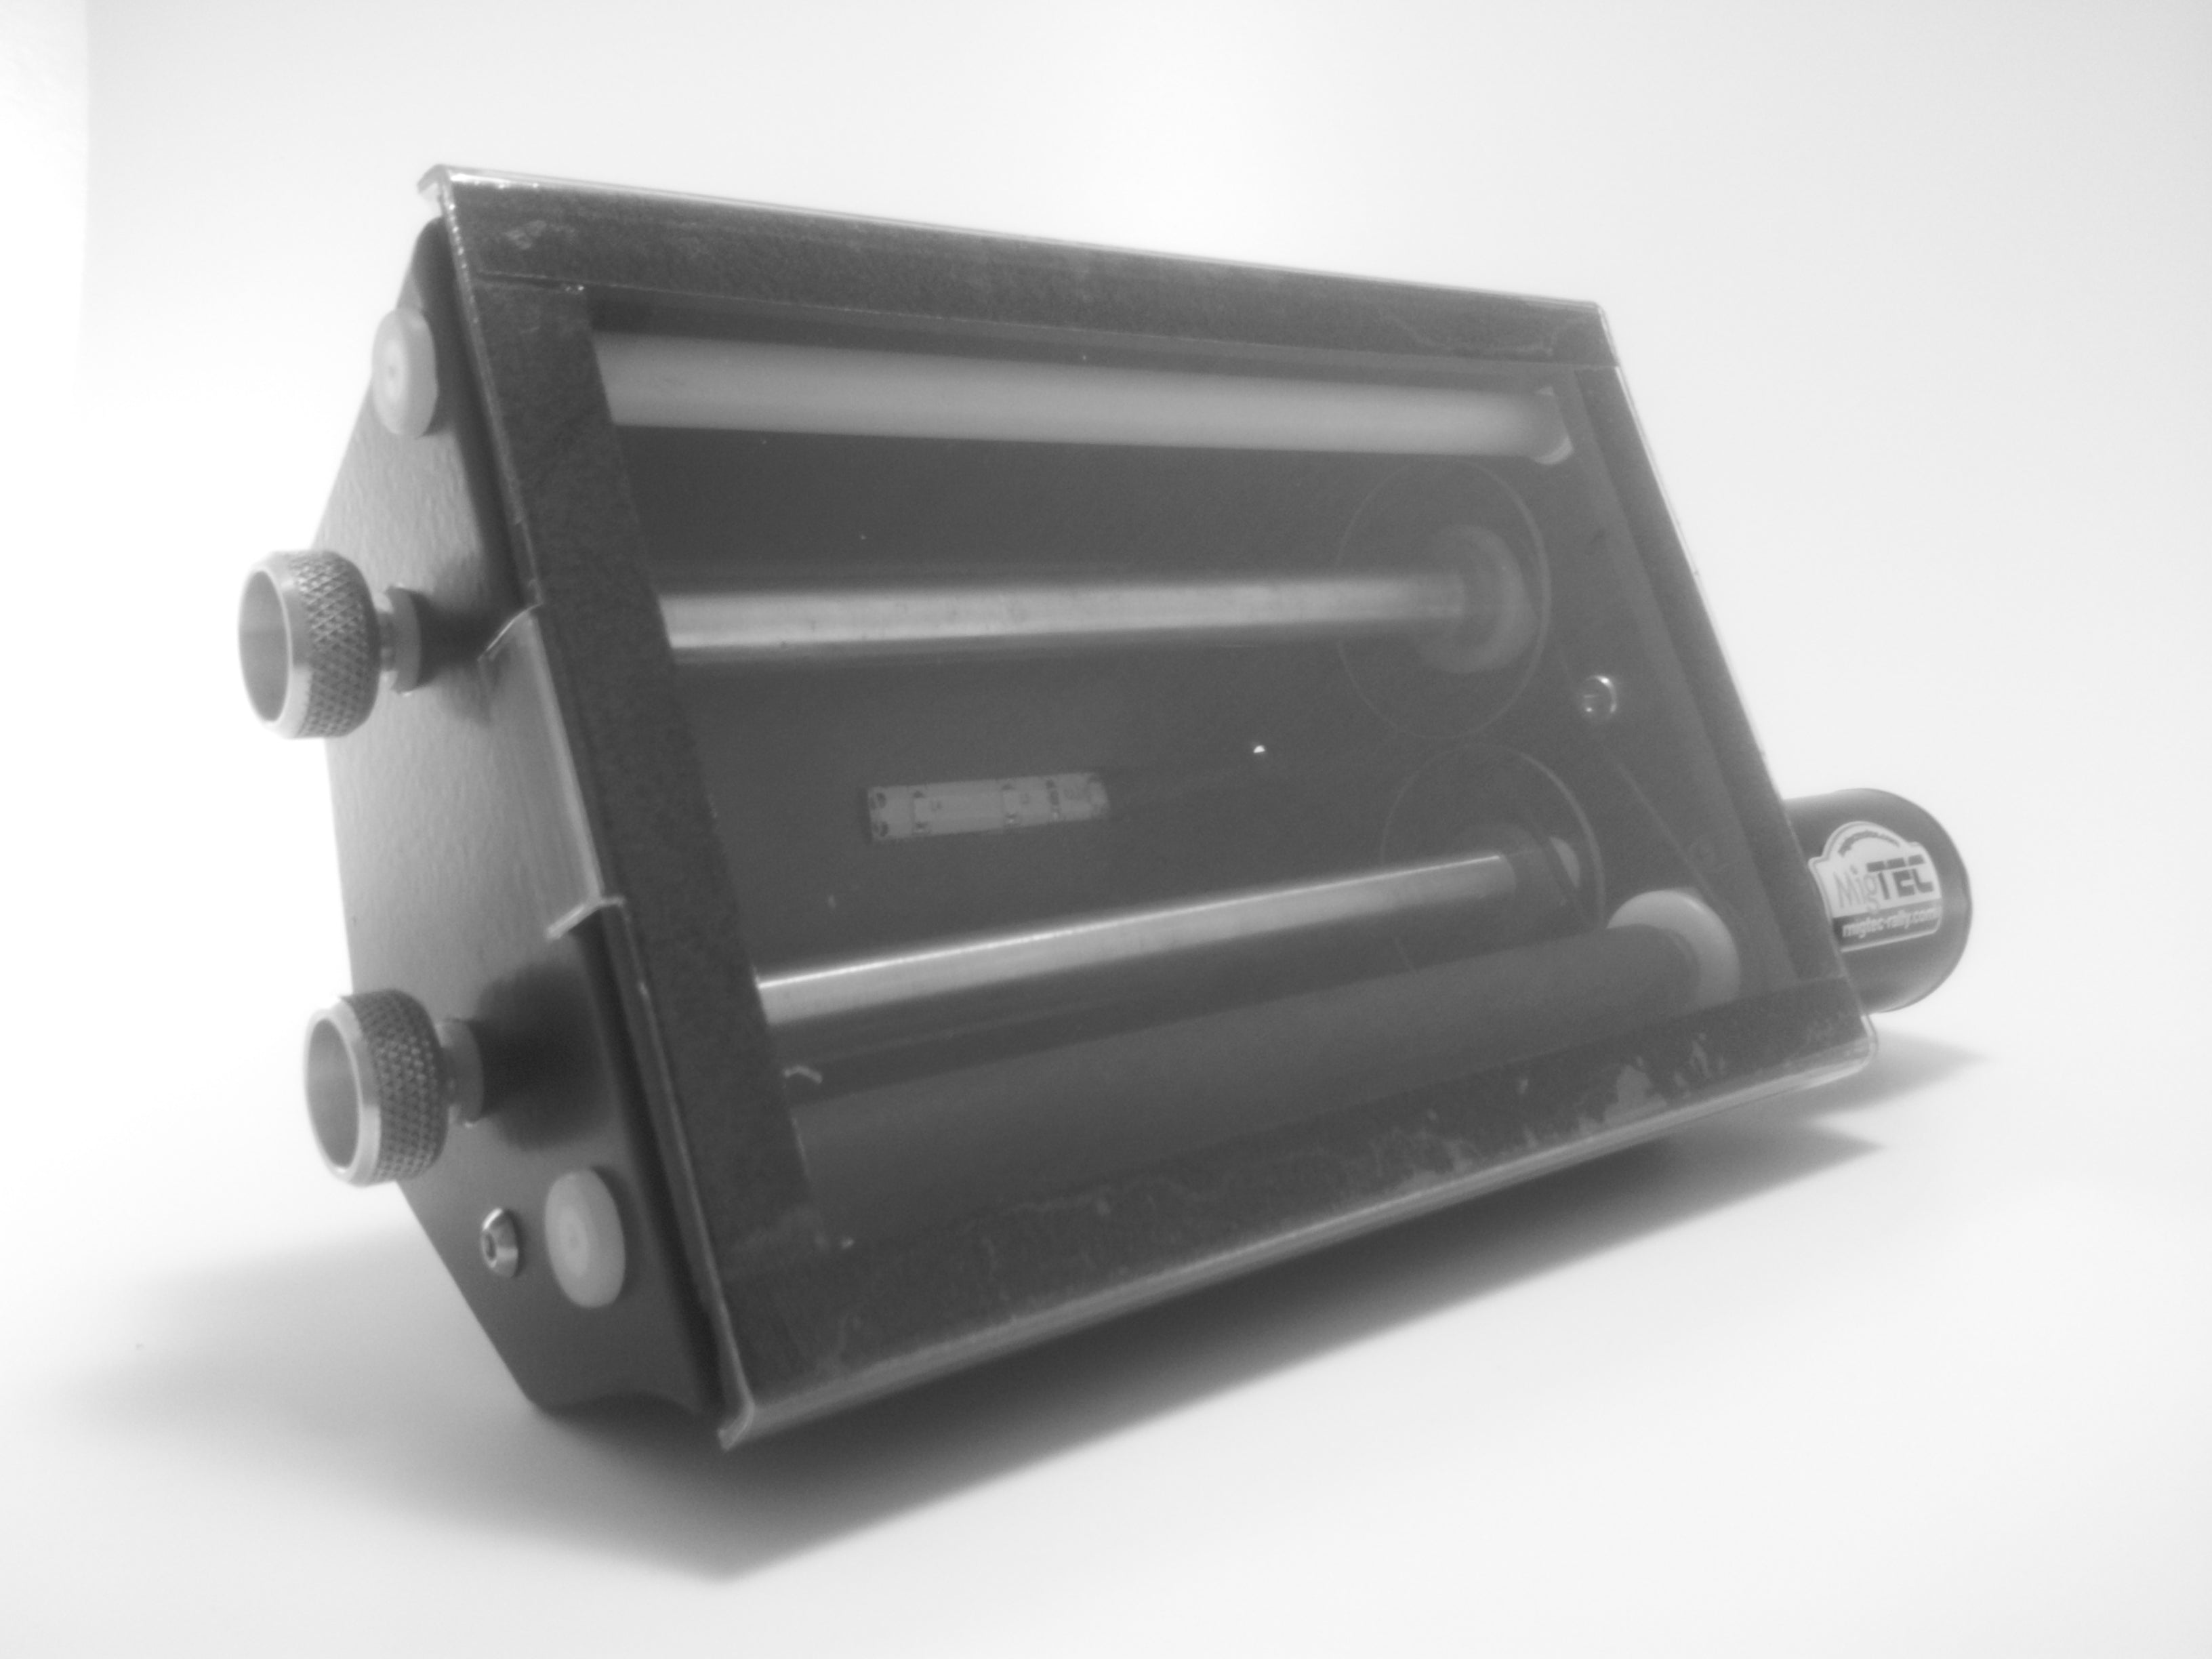 Migtec Roadbook Holder With Led Backlight By In Stock Yamaha Wr450 Wiring Diagram